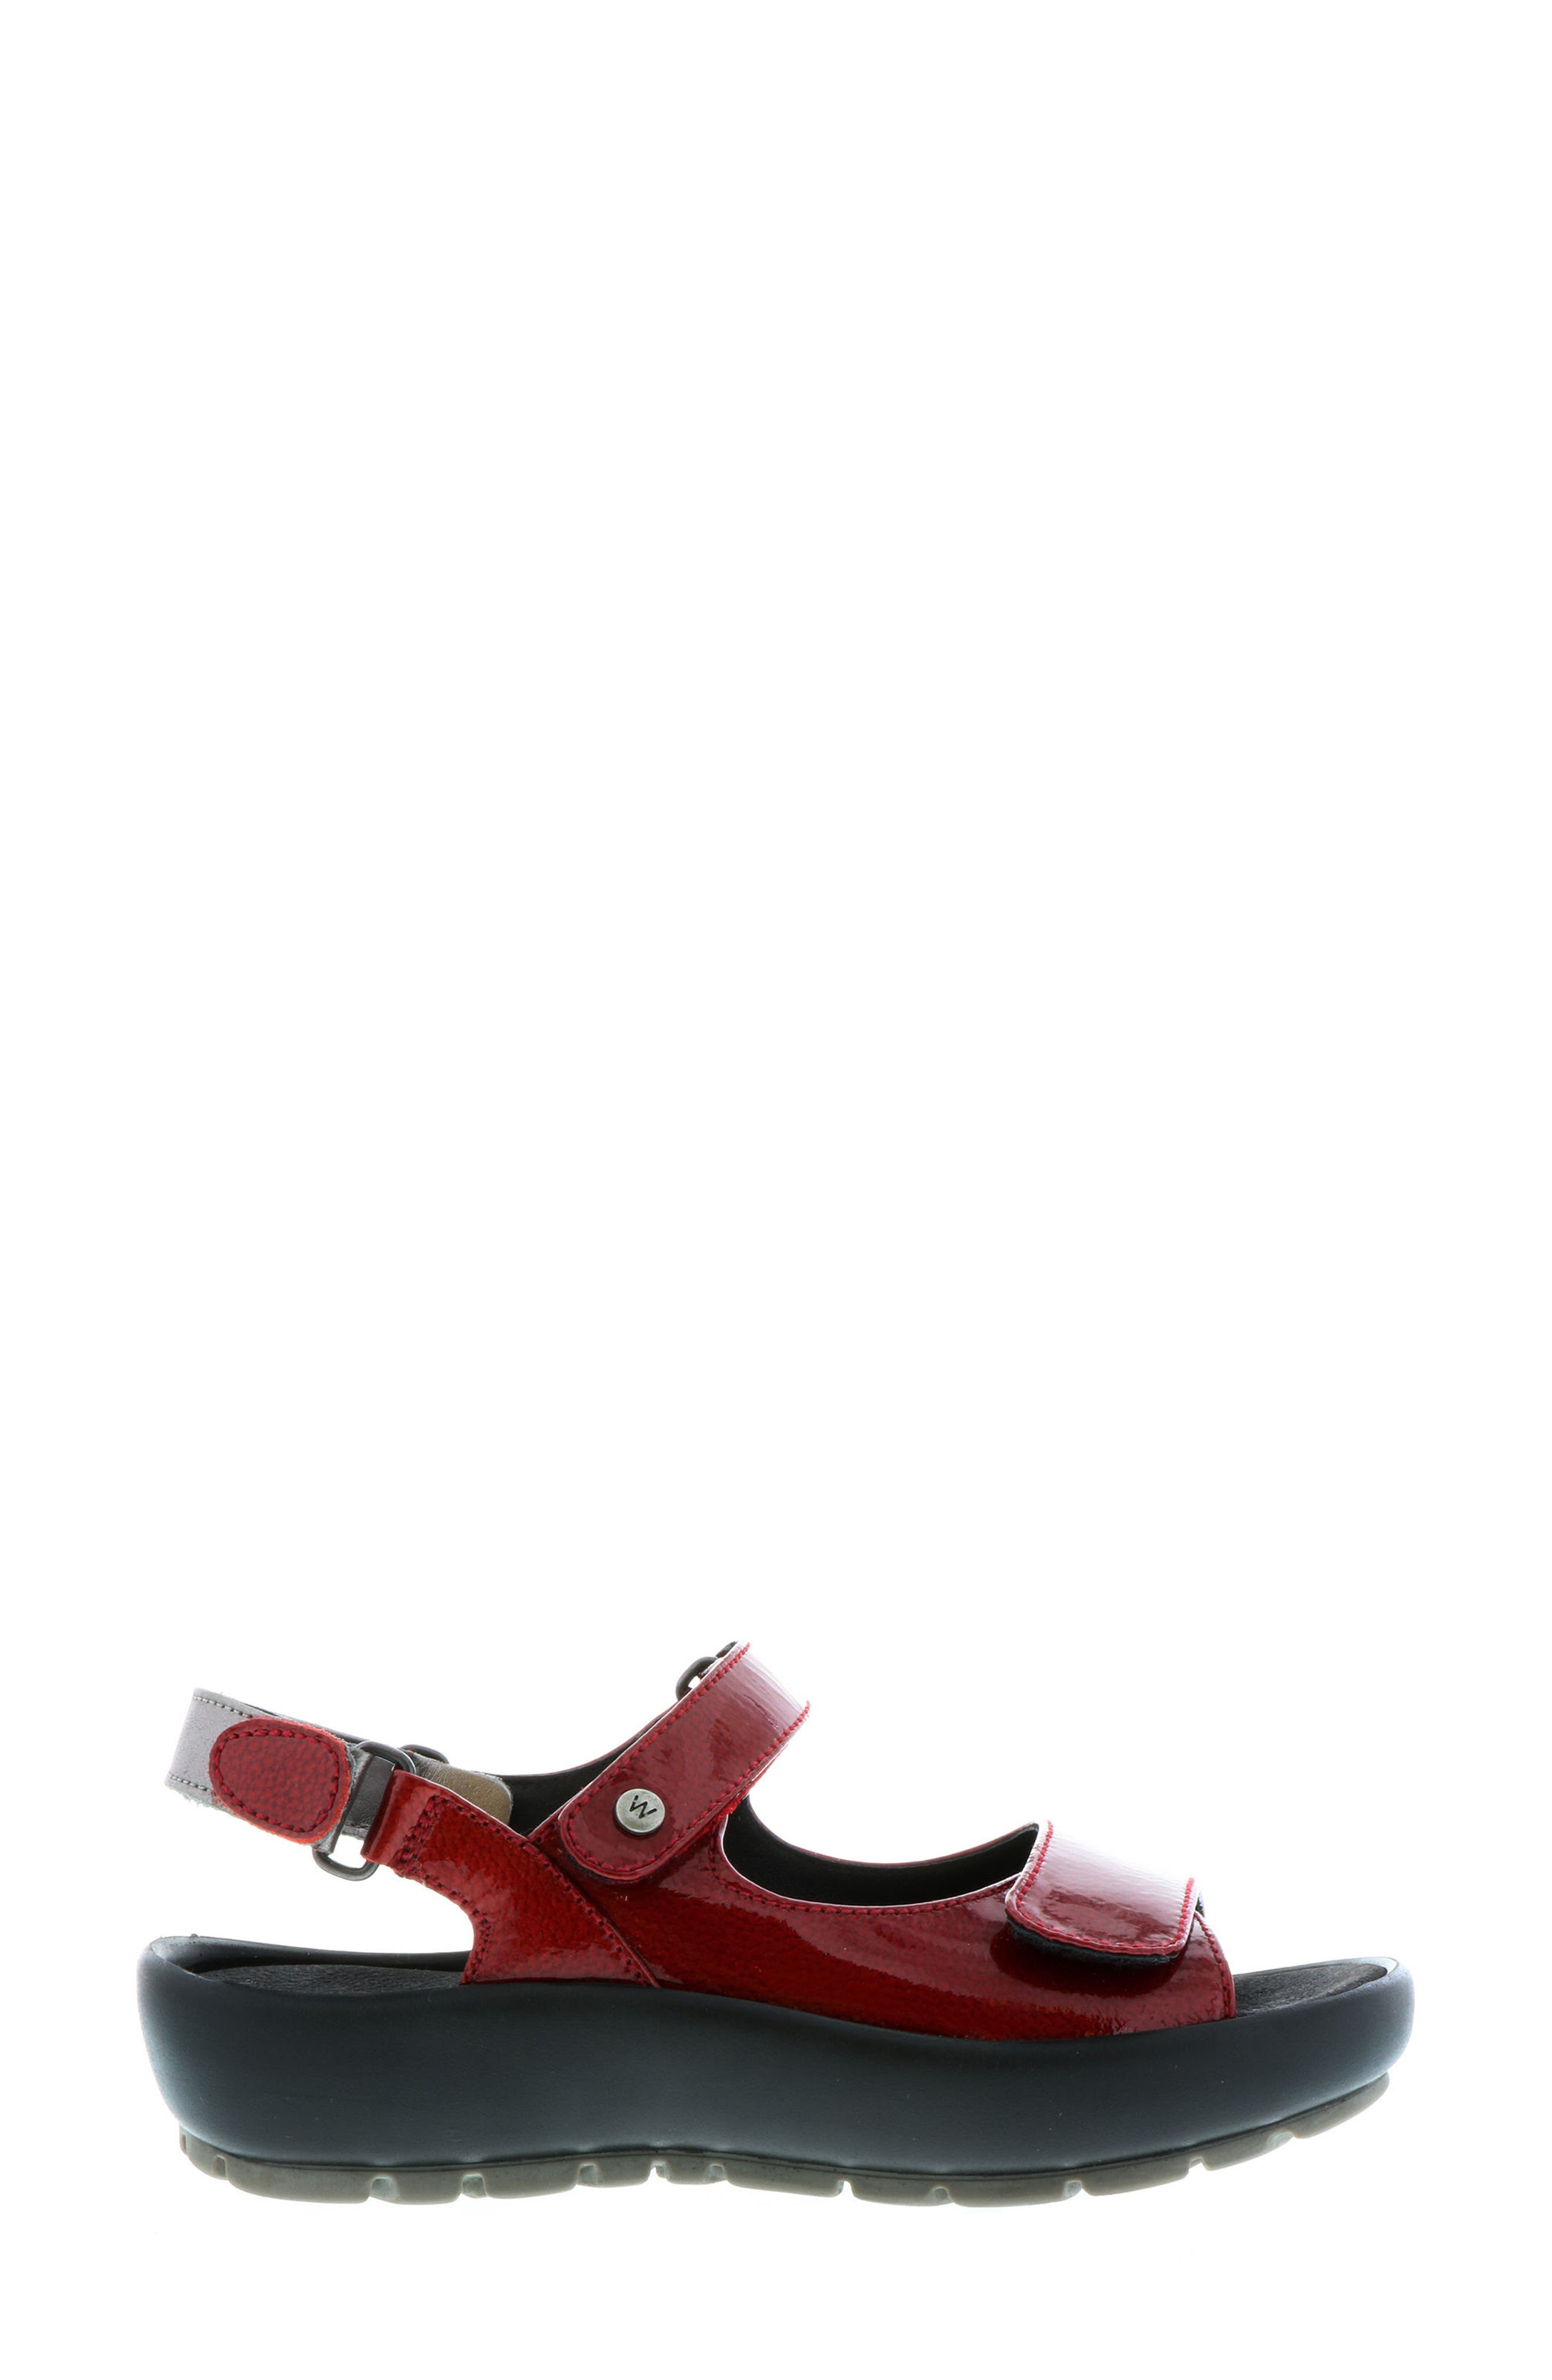 Rio Sandal,                             Alternate thumbnail 3, color,                             Red Patent Leather